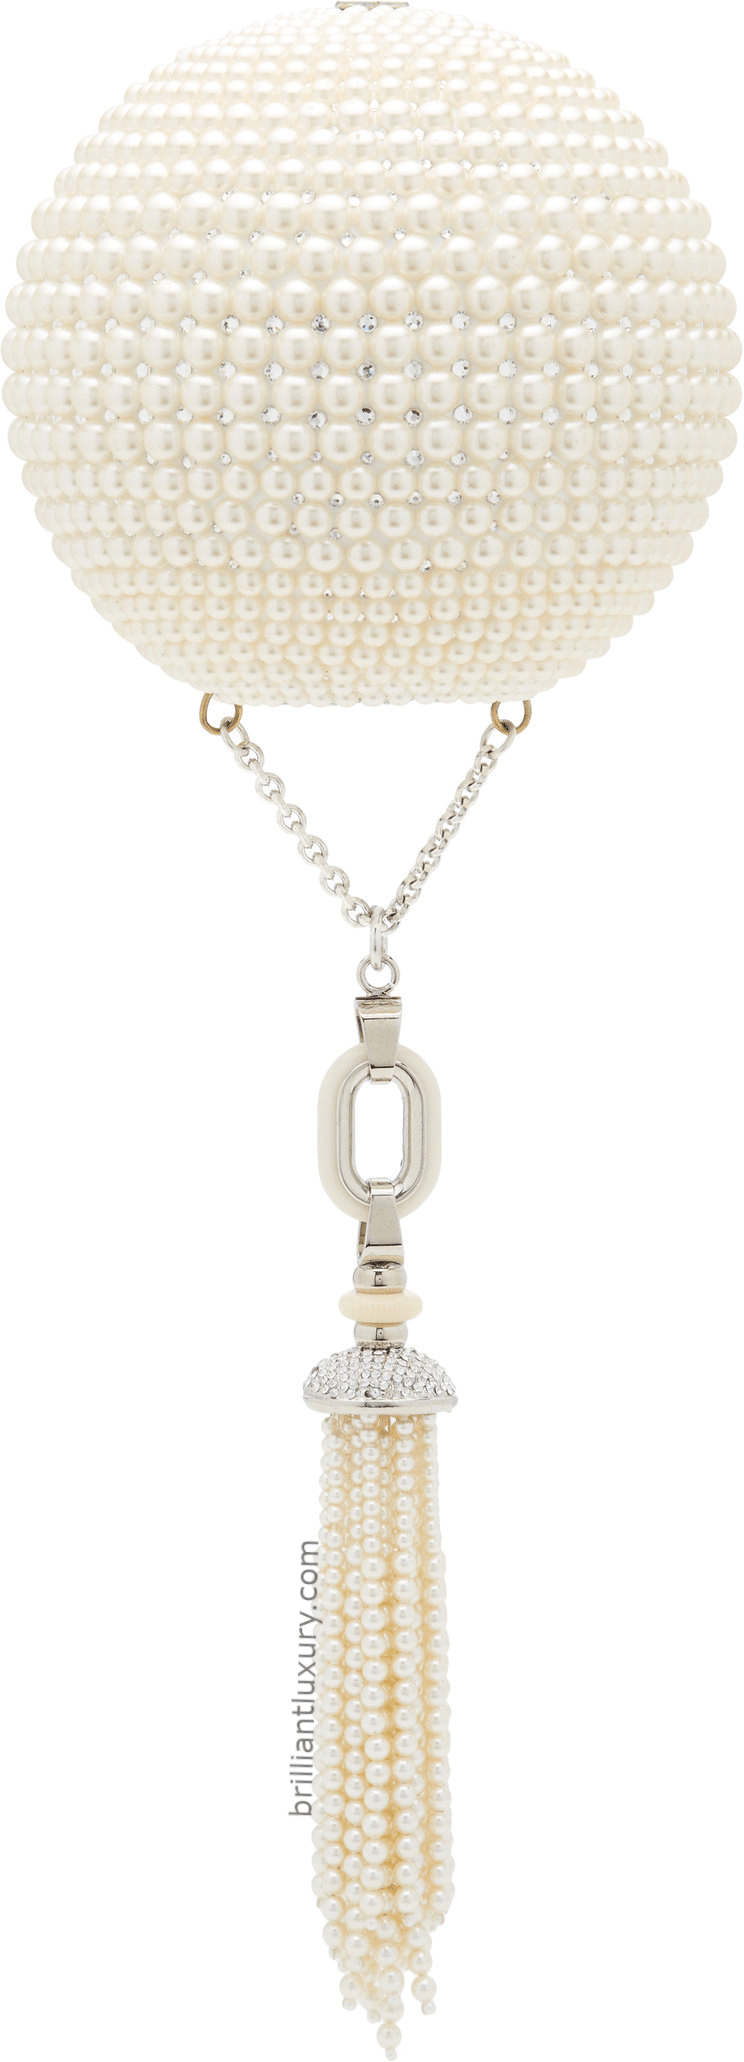 Judith Leiber pearl and crystal-embellished clutch